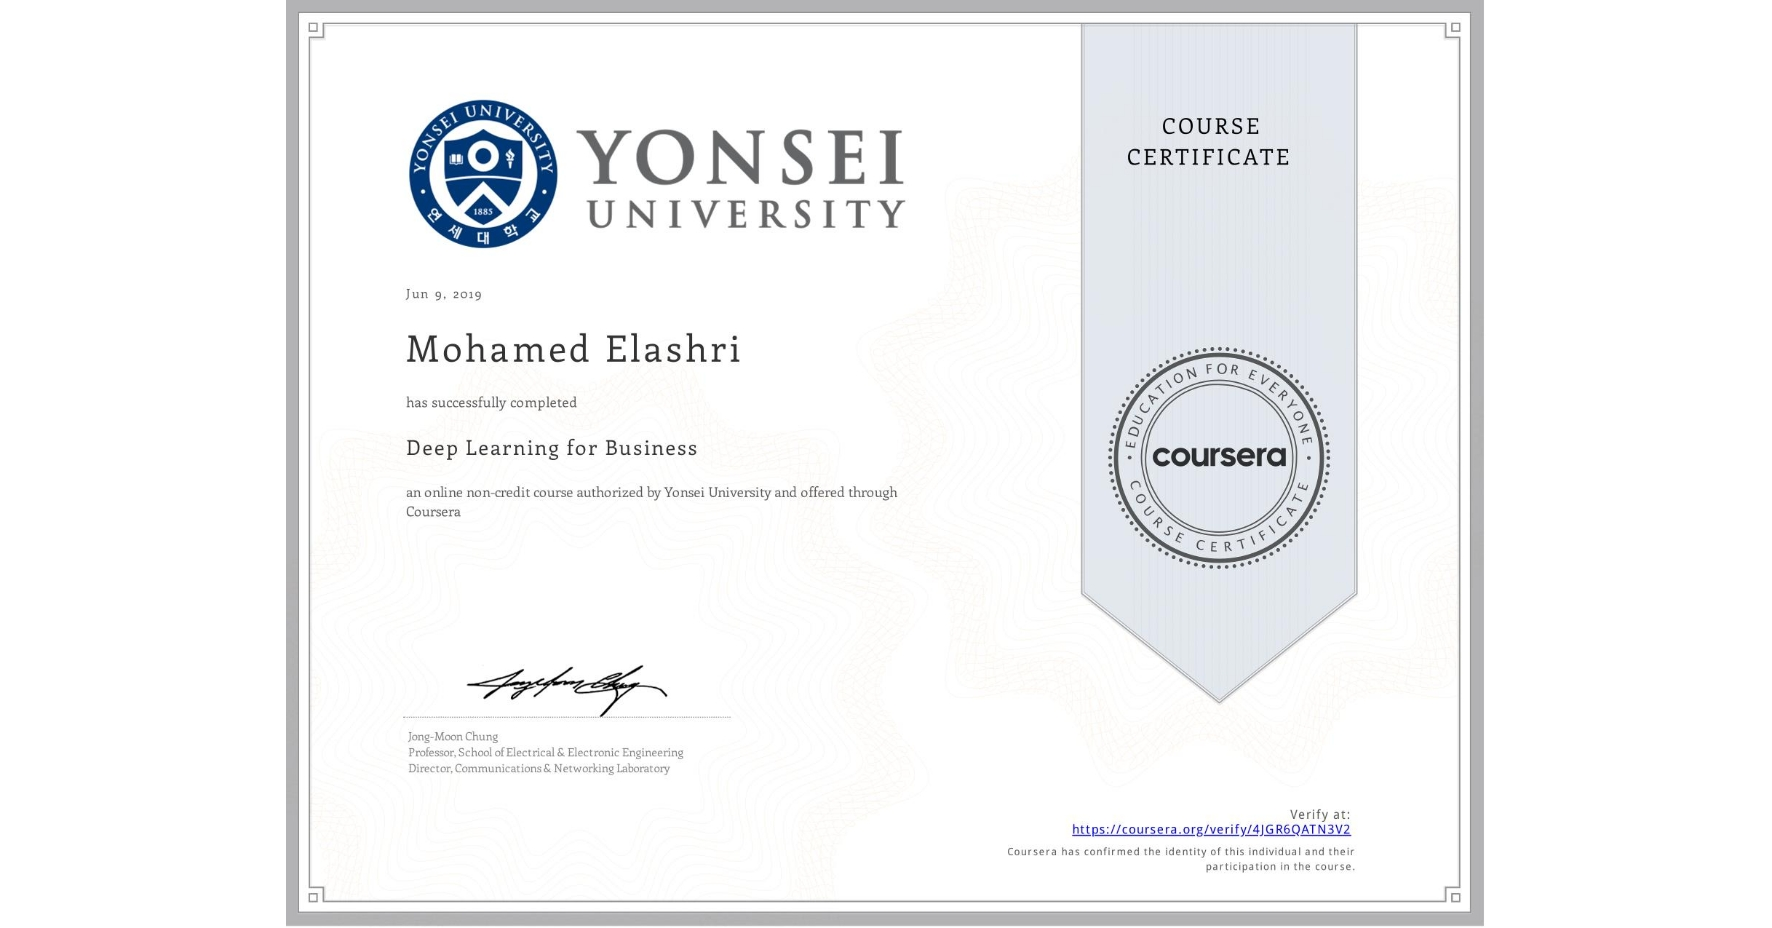 View certificate for Mohamed Elashri, Deep Learning for Business, an online non-credit course authorized by Yonsei University and offered through Coursera